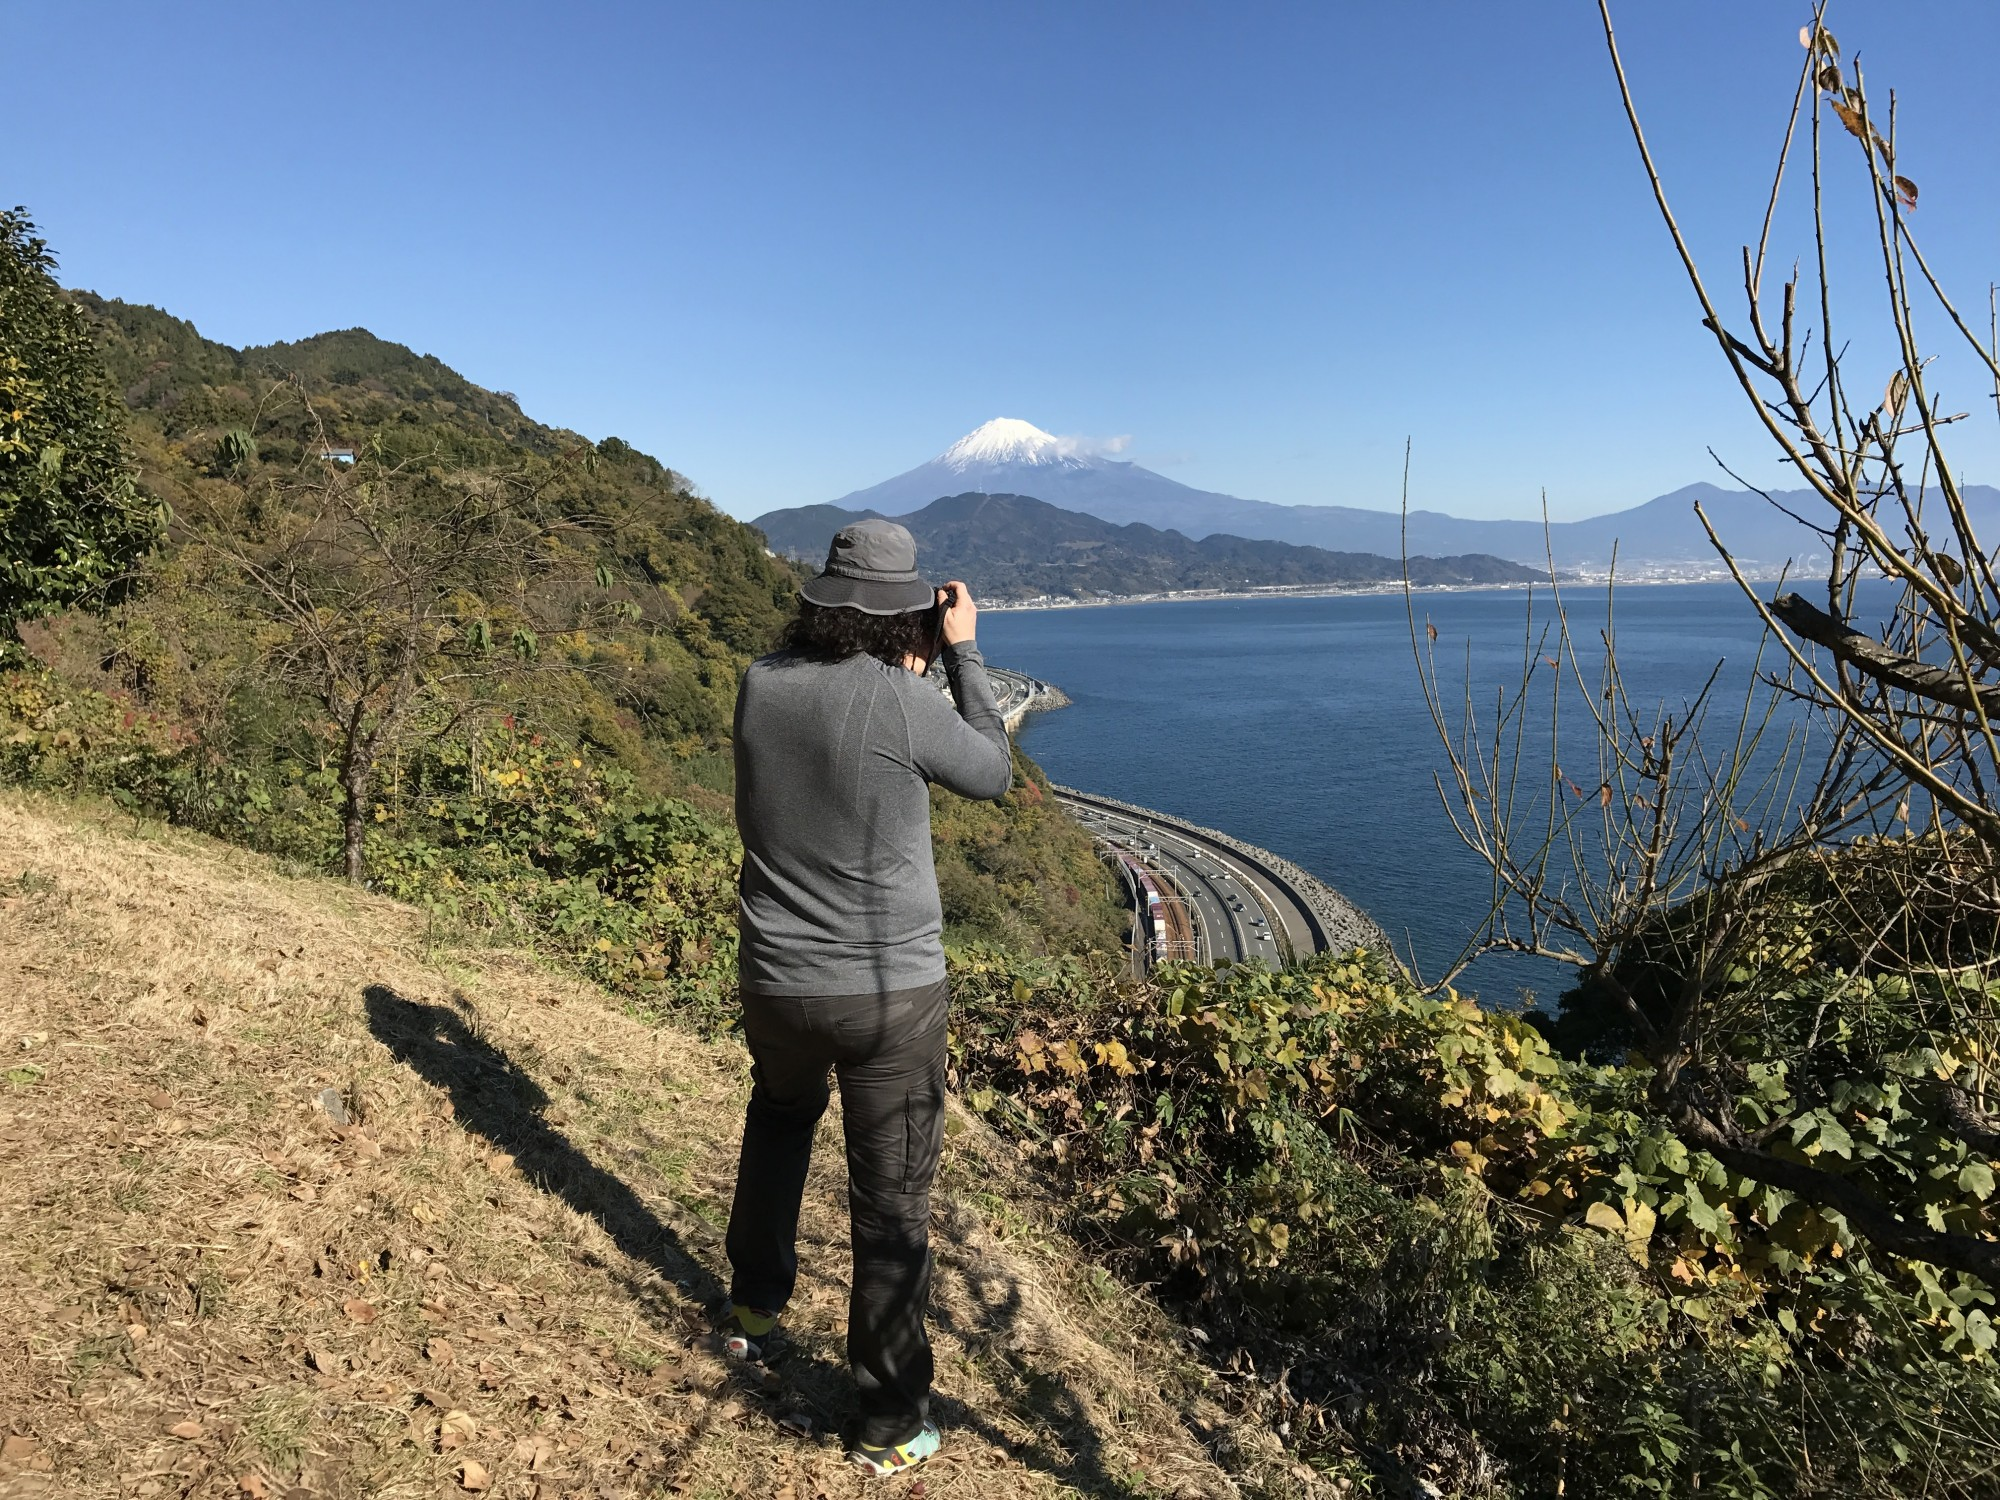 Tokaido_Trail_View_of_Mt._Fuji_02.JPG